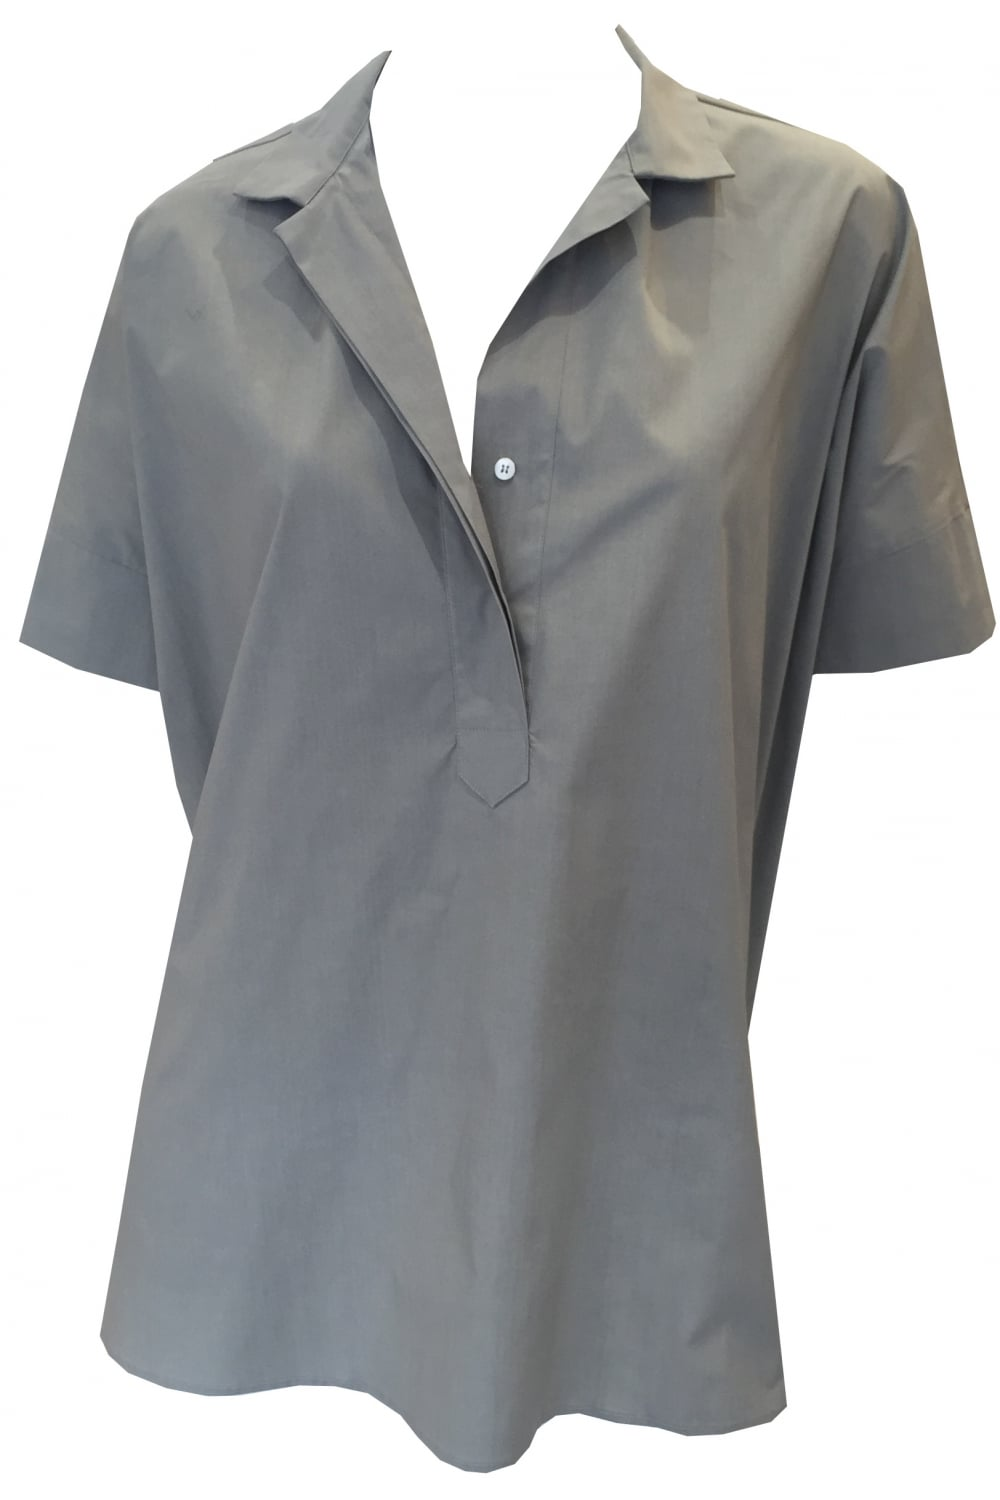 Rosso 35 Women's S3087T Oversized Short Sleeve Grey Shirt